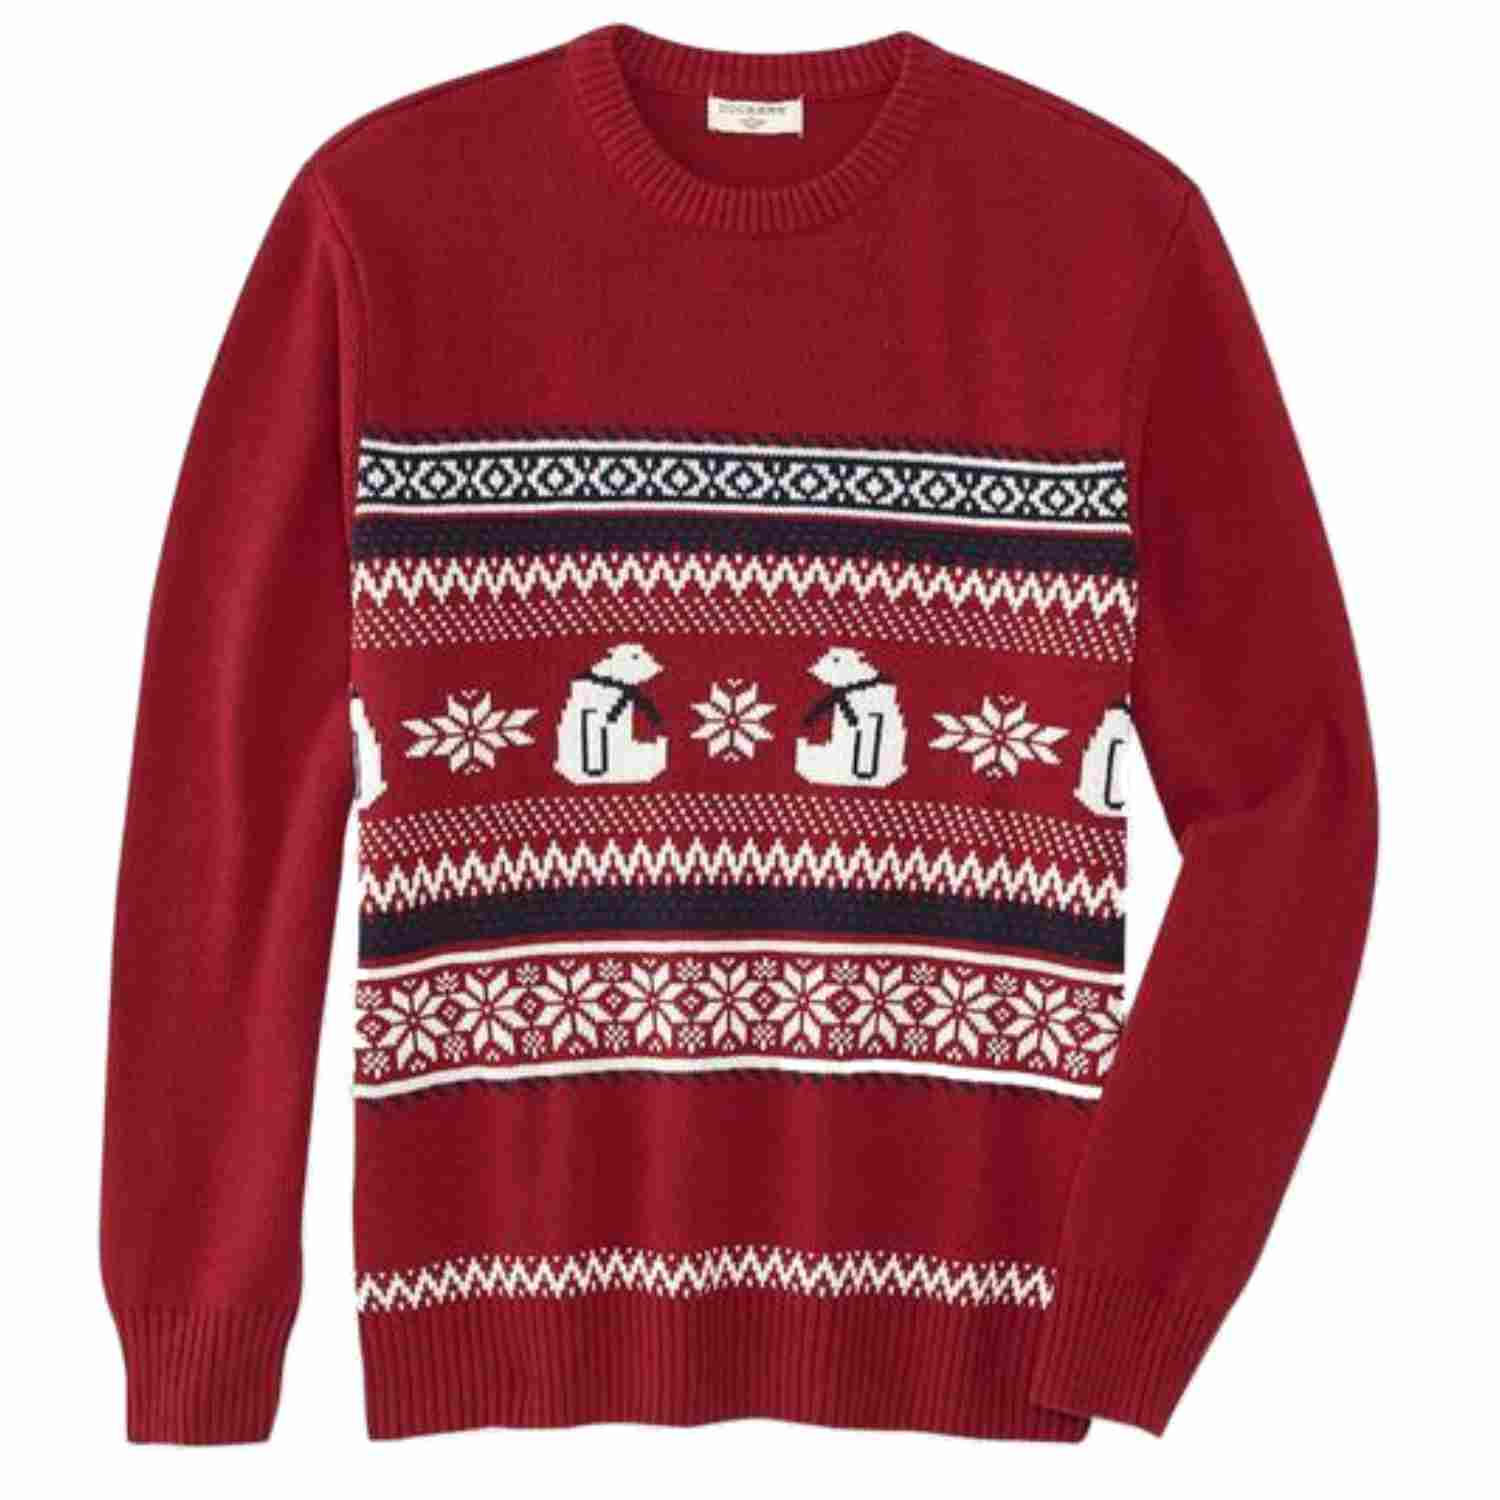 Dockers Mens Red Polar Bear & Snowflakes Christmas Sweater